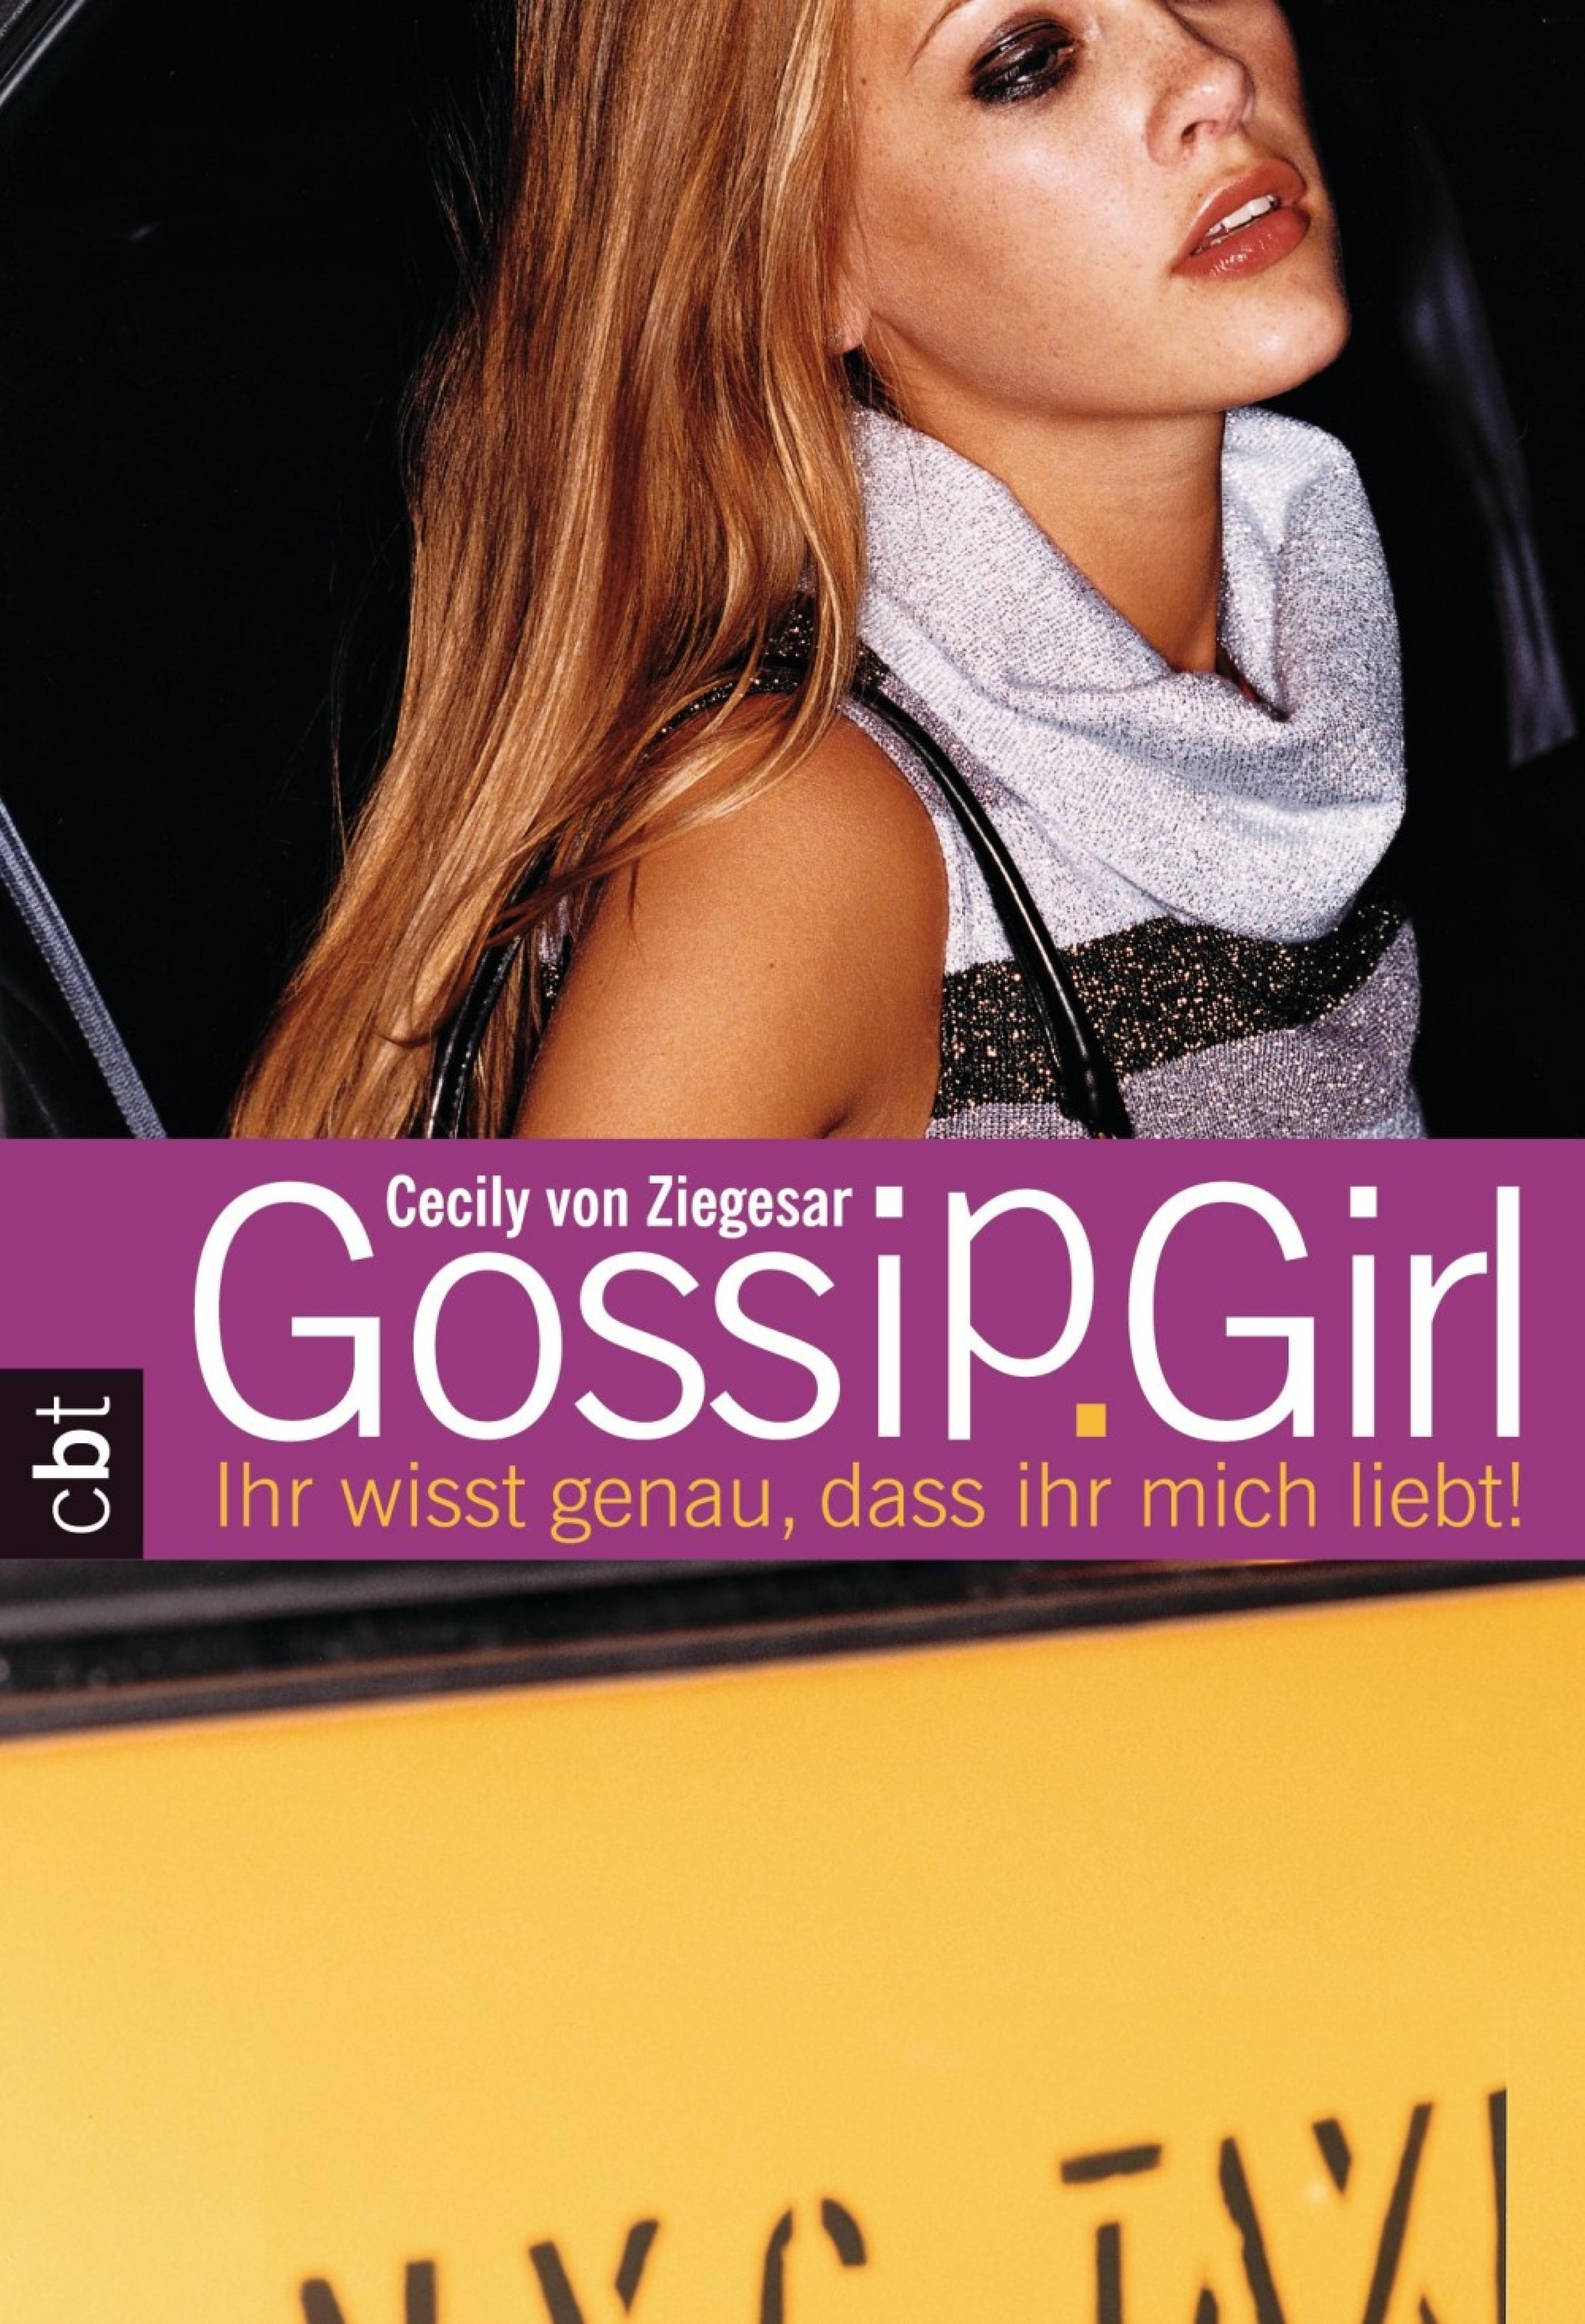 Consider, that Gossip girl book series